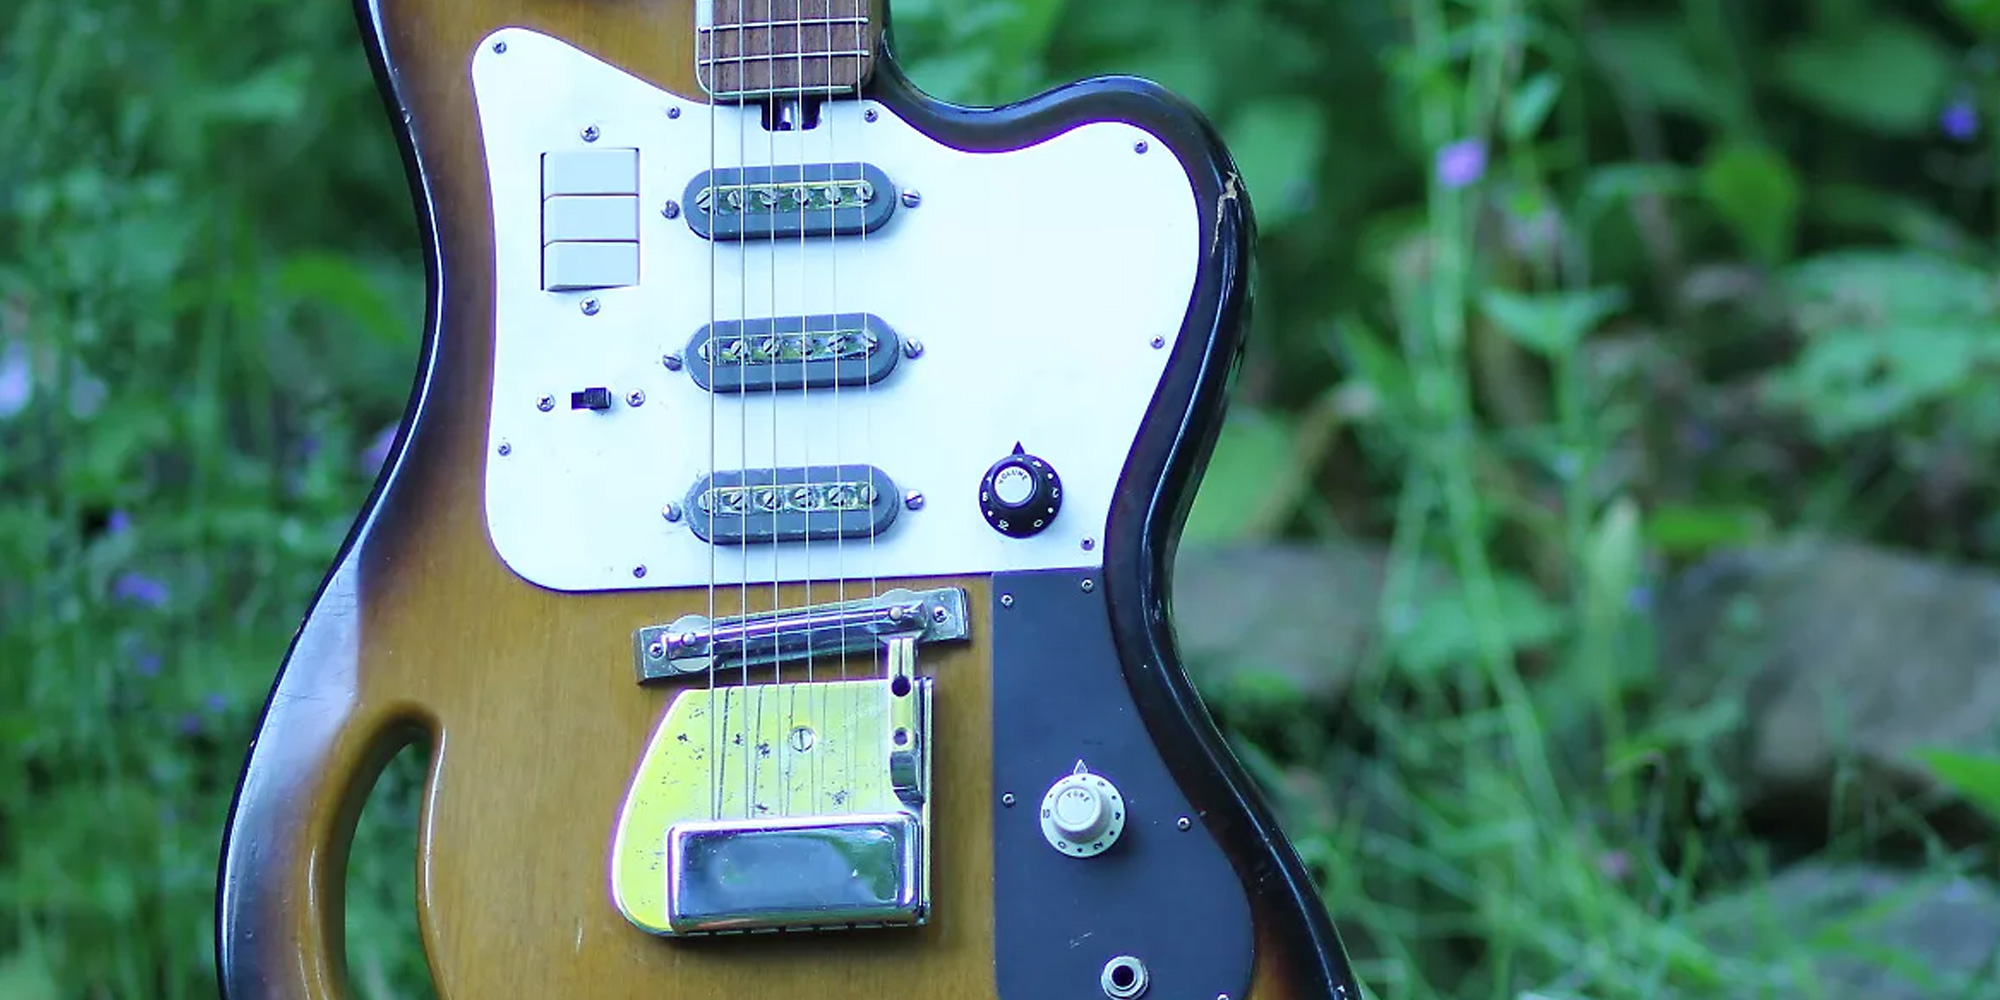 Its Not All Teisco A Look At Lesser Known 60s Reverb News Electric Guitar Wiring Books 5 Things To Consider Before Buying Vintage Japanese